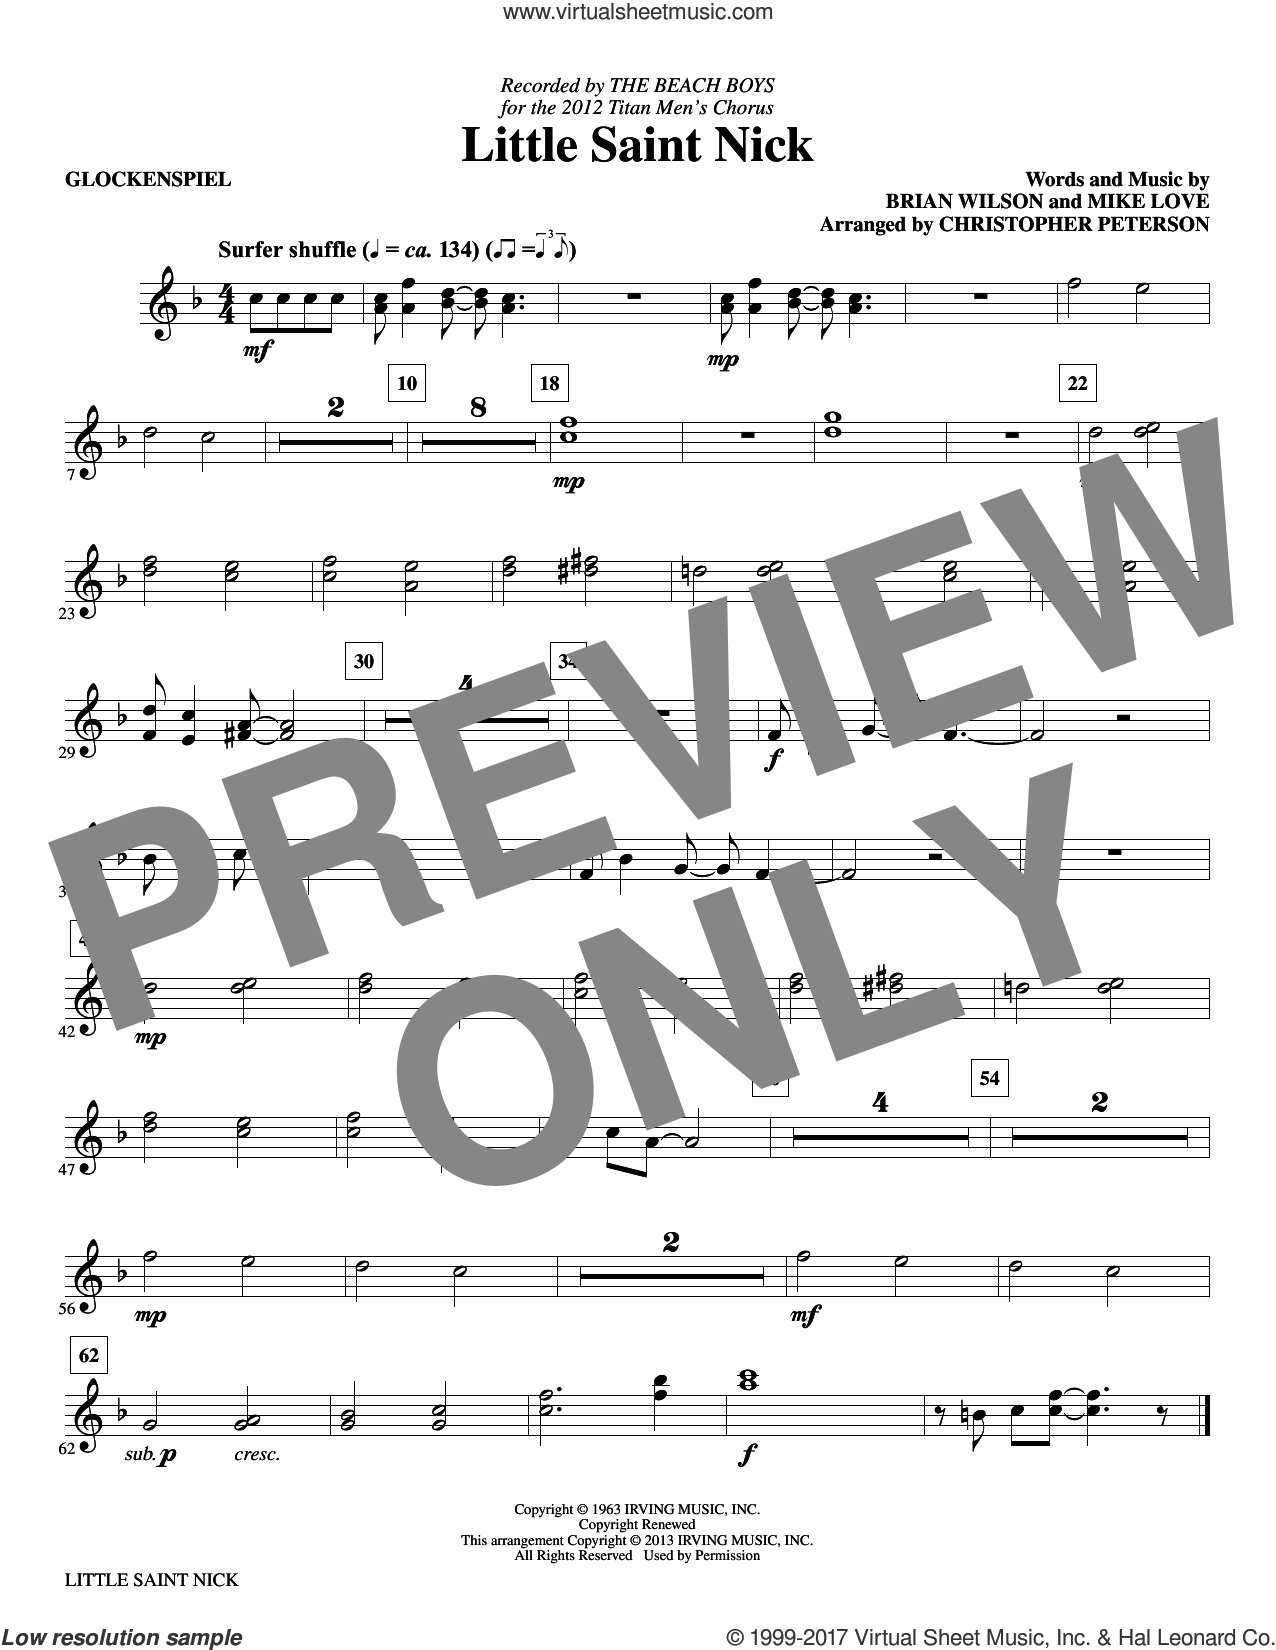 Little Saint Nick (complete set of parts) sheet music for orchestra/band by The Beach Boys, Brian Wilson, Christopher Peterson and Mike Love, intermediate skill level